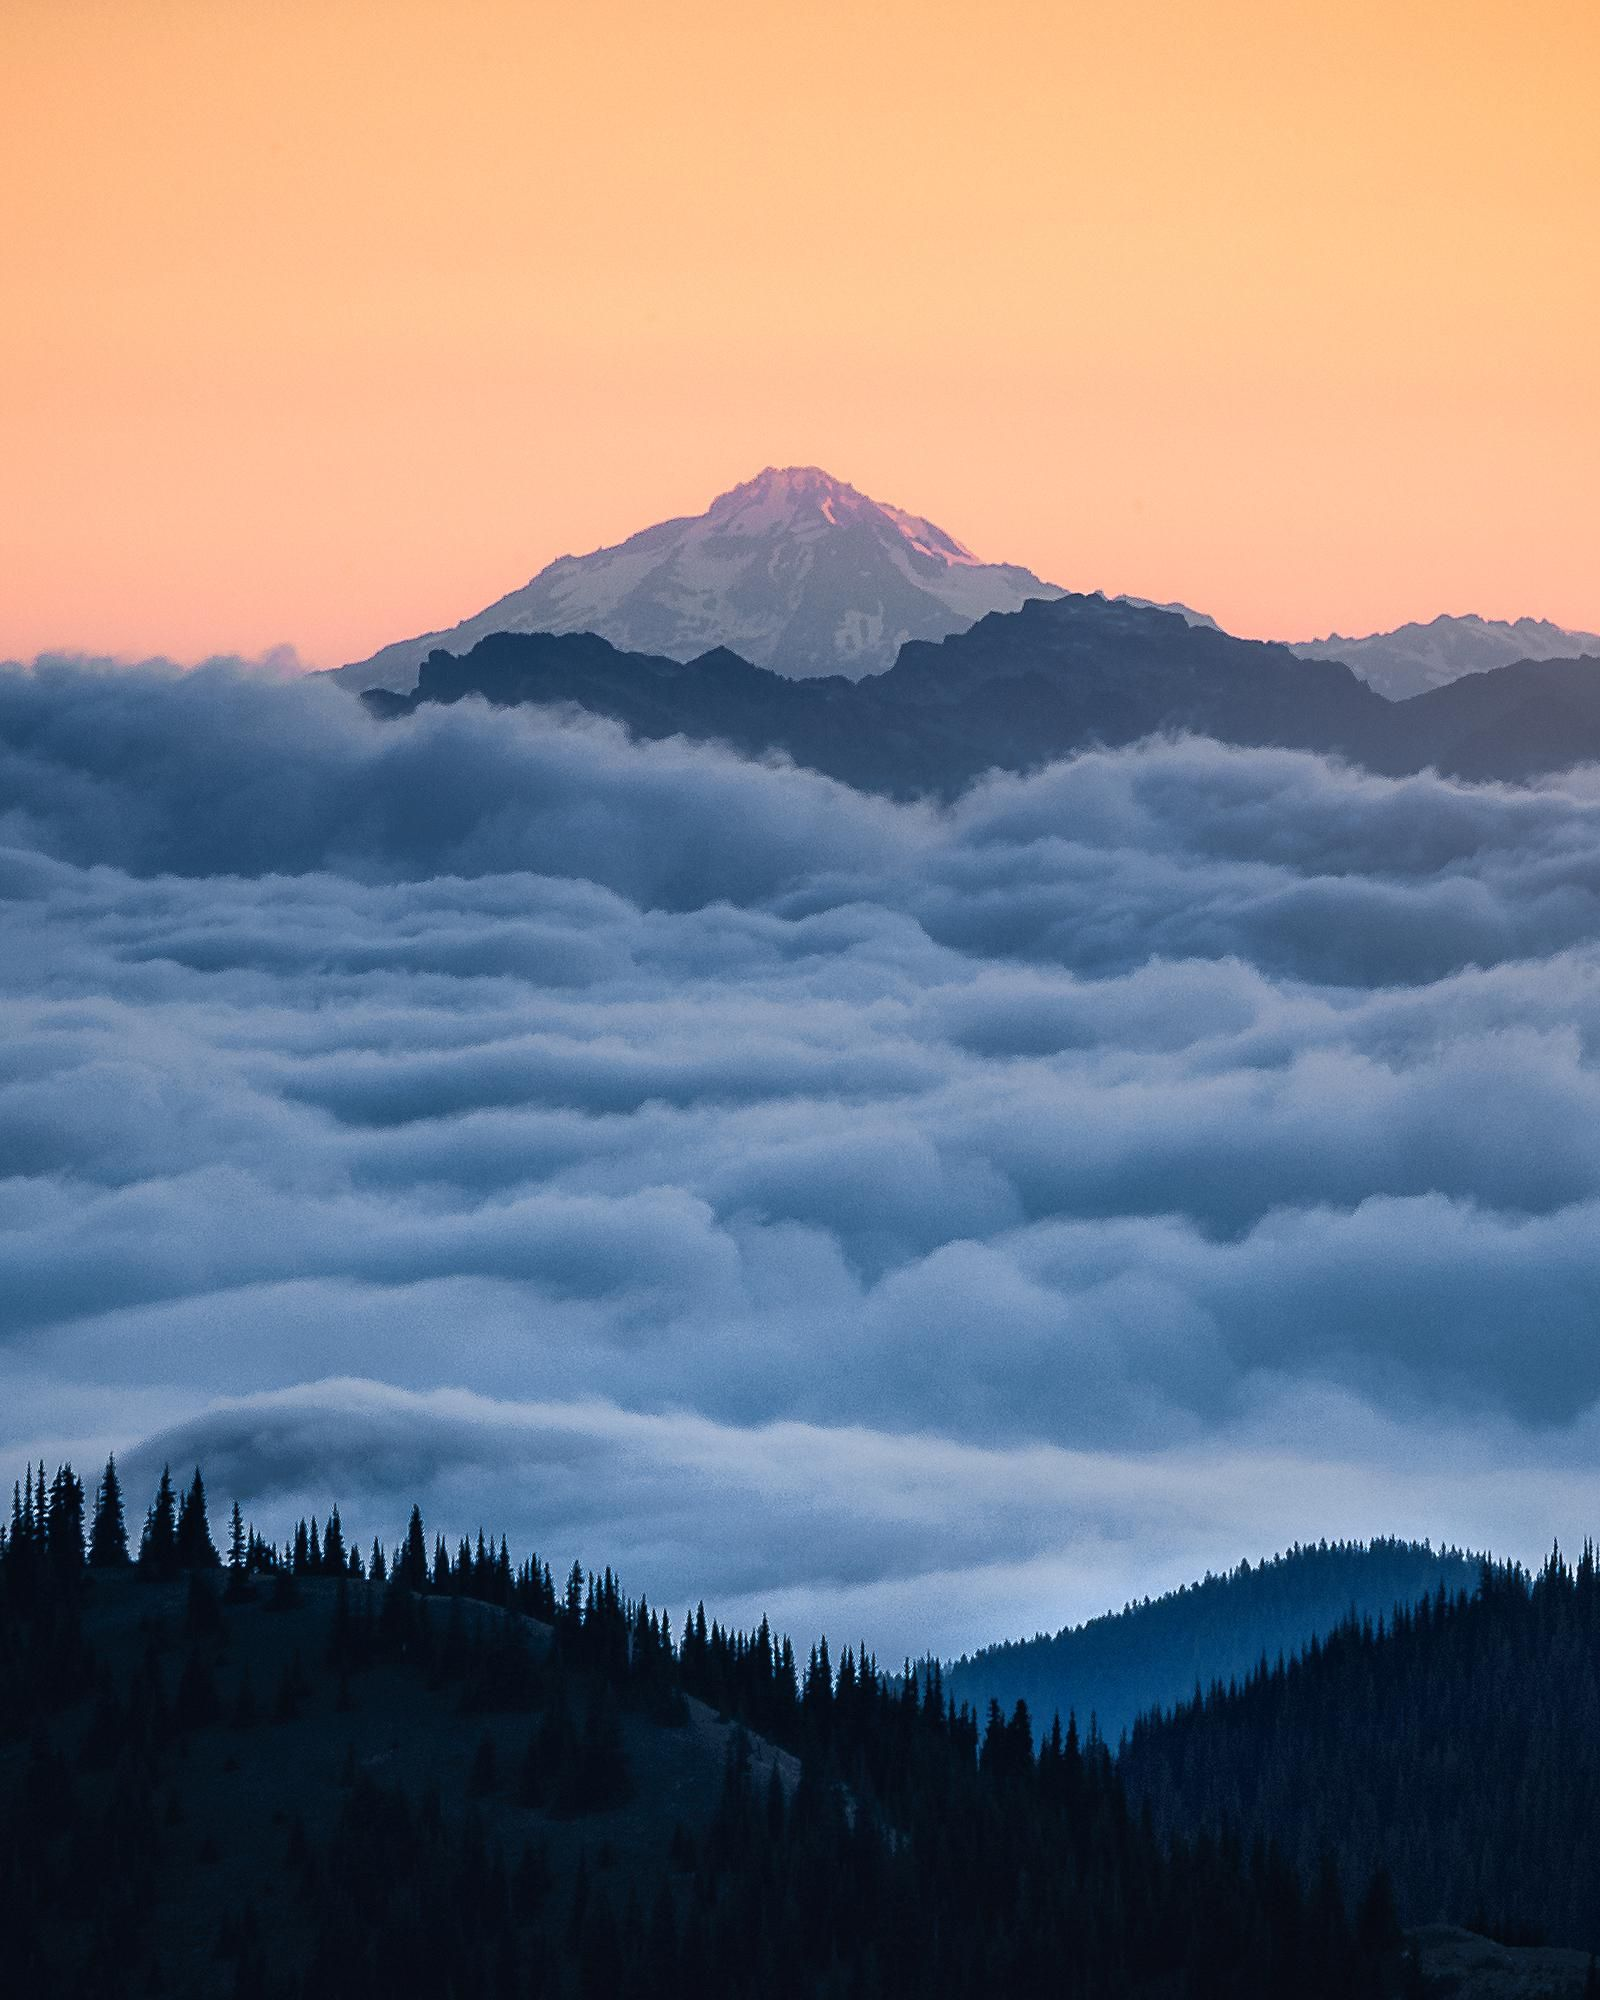 Glacier Peak rising above a sea of clouds during sunrise